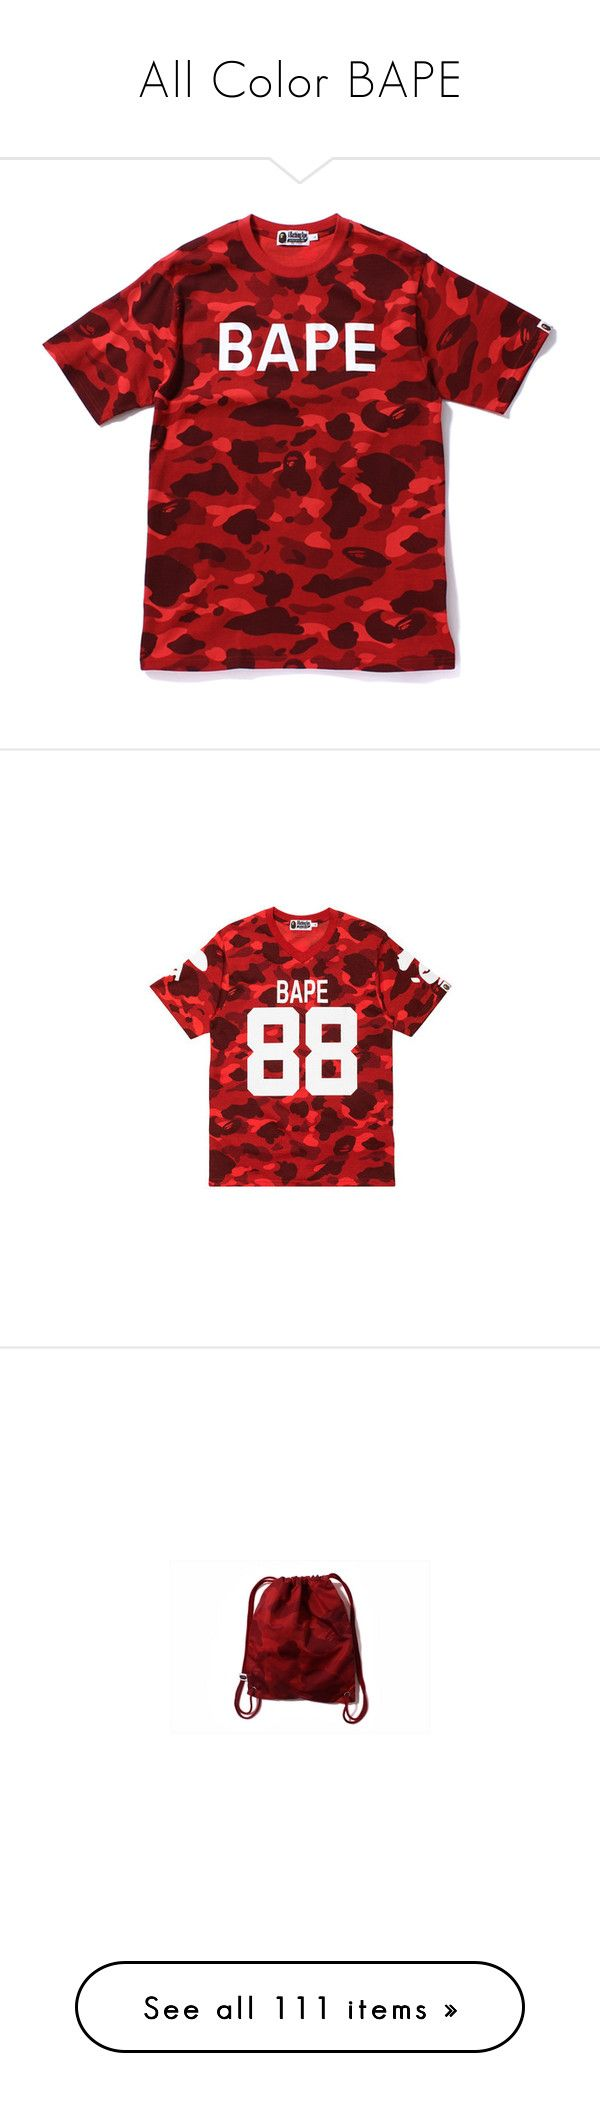 """""""All Color BAPE"""" by xxxfasiontrendsxxx on Polyvore featuring tops, t-shirts, shirts, items, t shirt, camouflage shirts, camouflage tee-shirt, cotton t shirts, camo tee-shirt and camo shirt"""